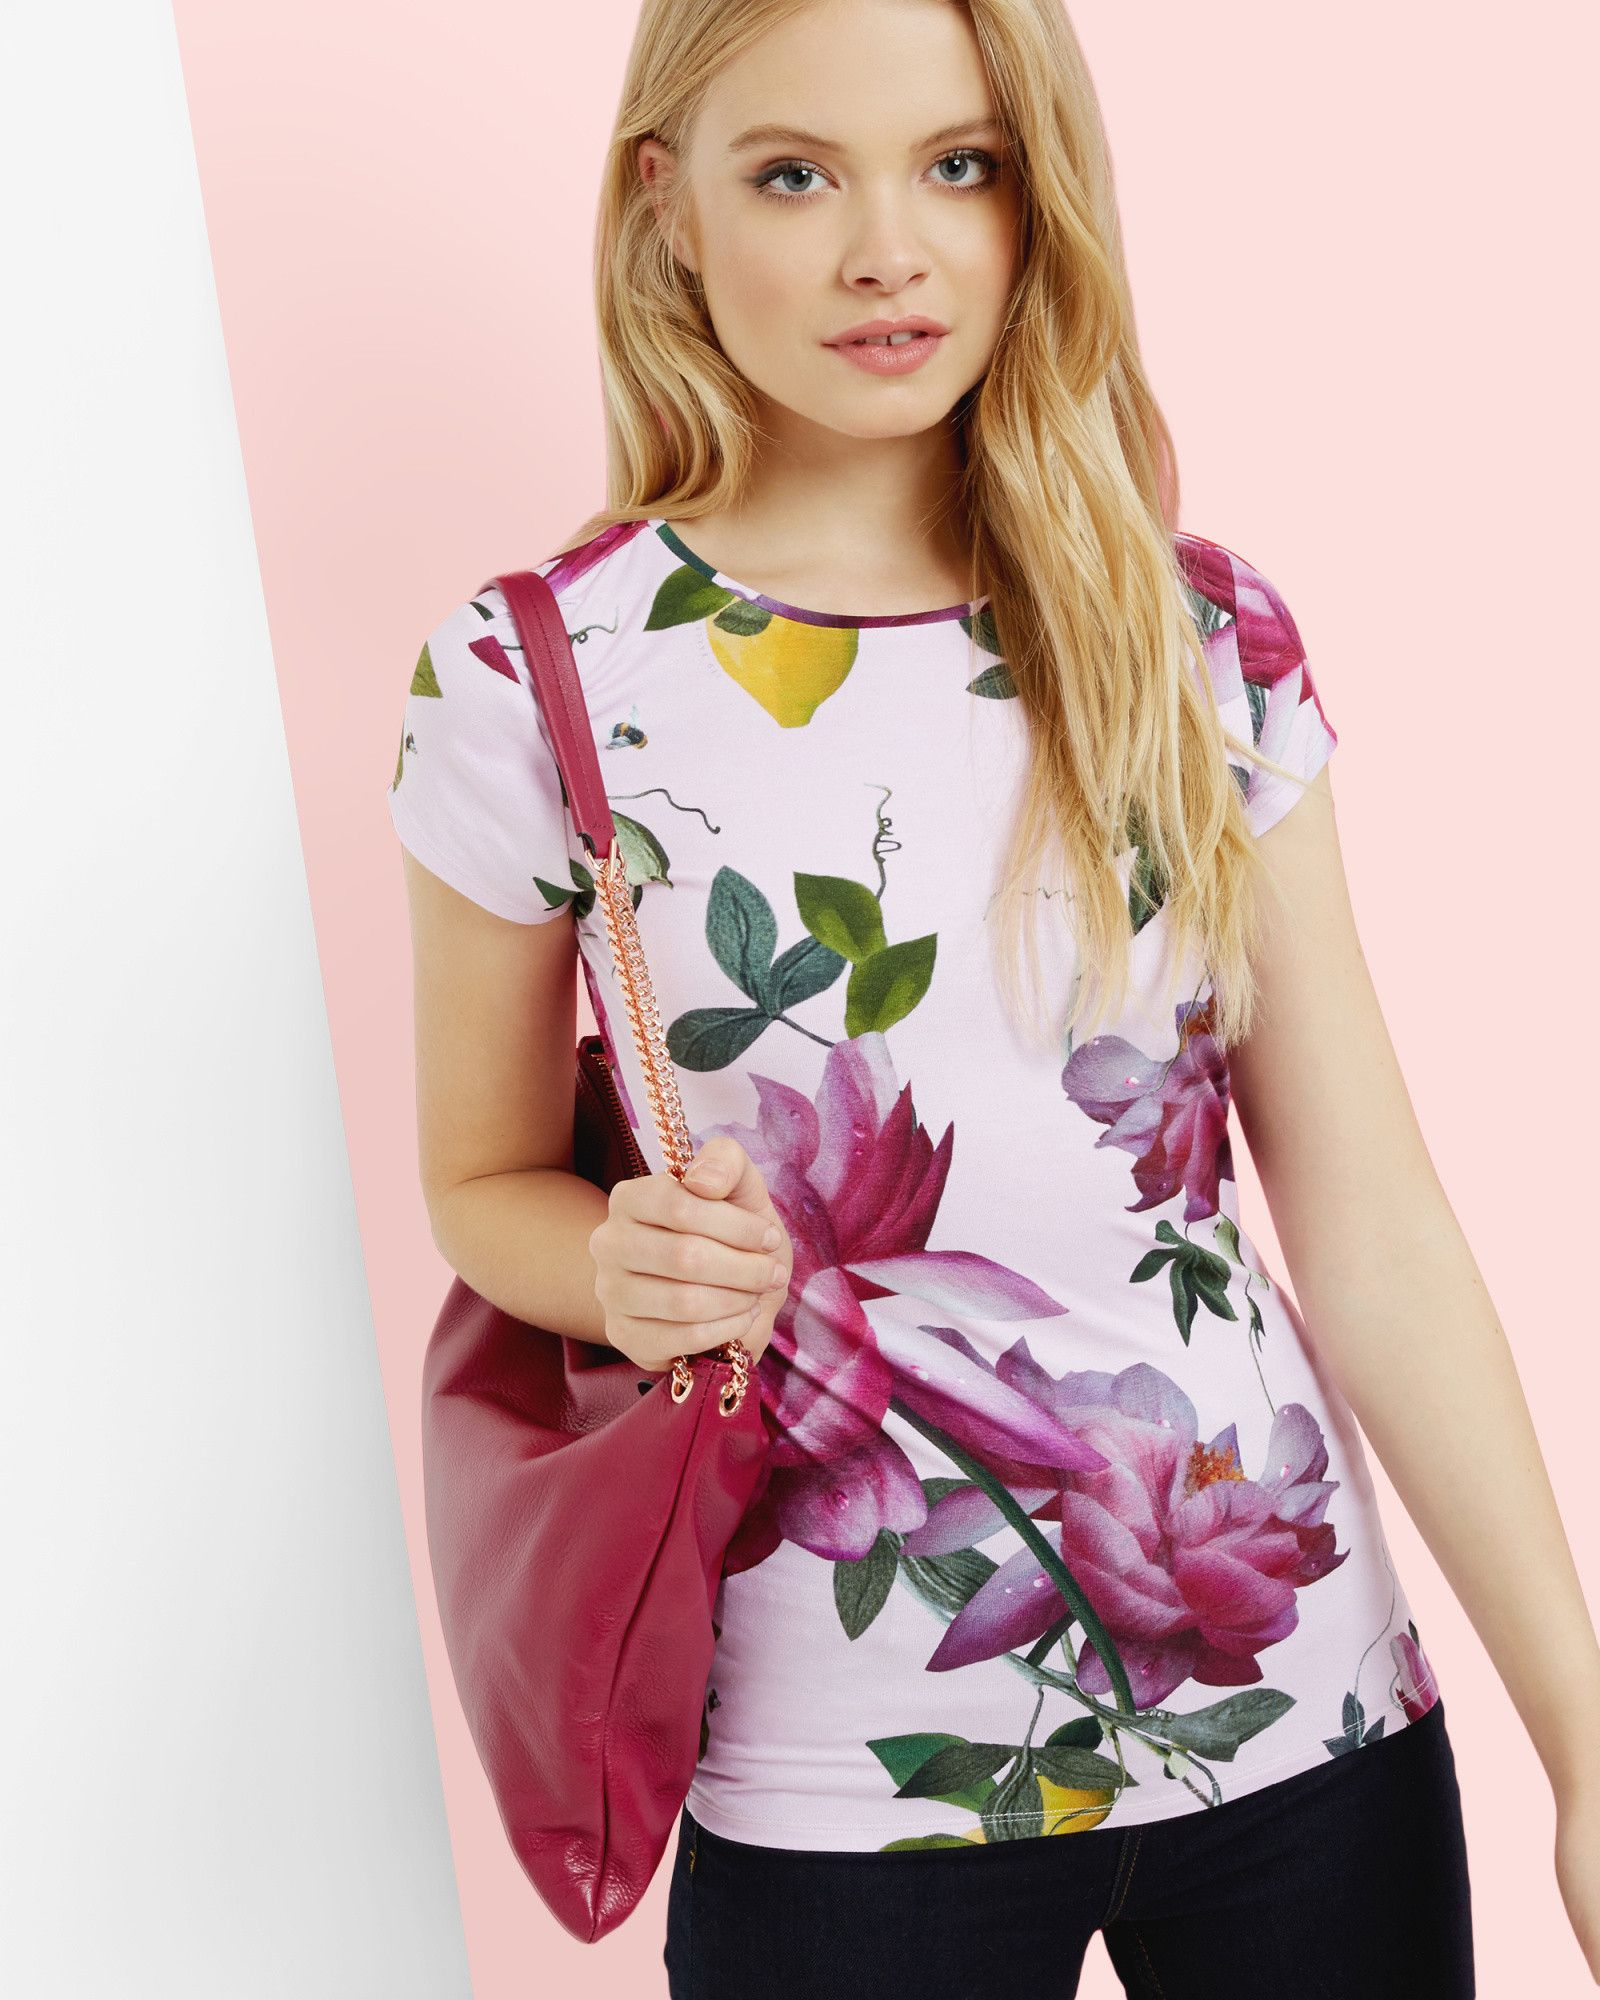 Citrus bloom fitted tshirt pink tops ted baker